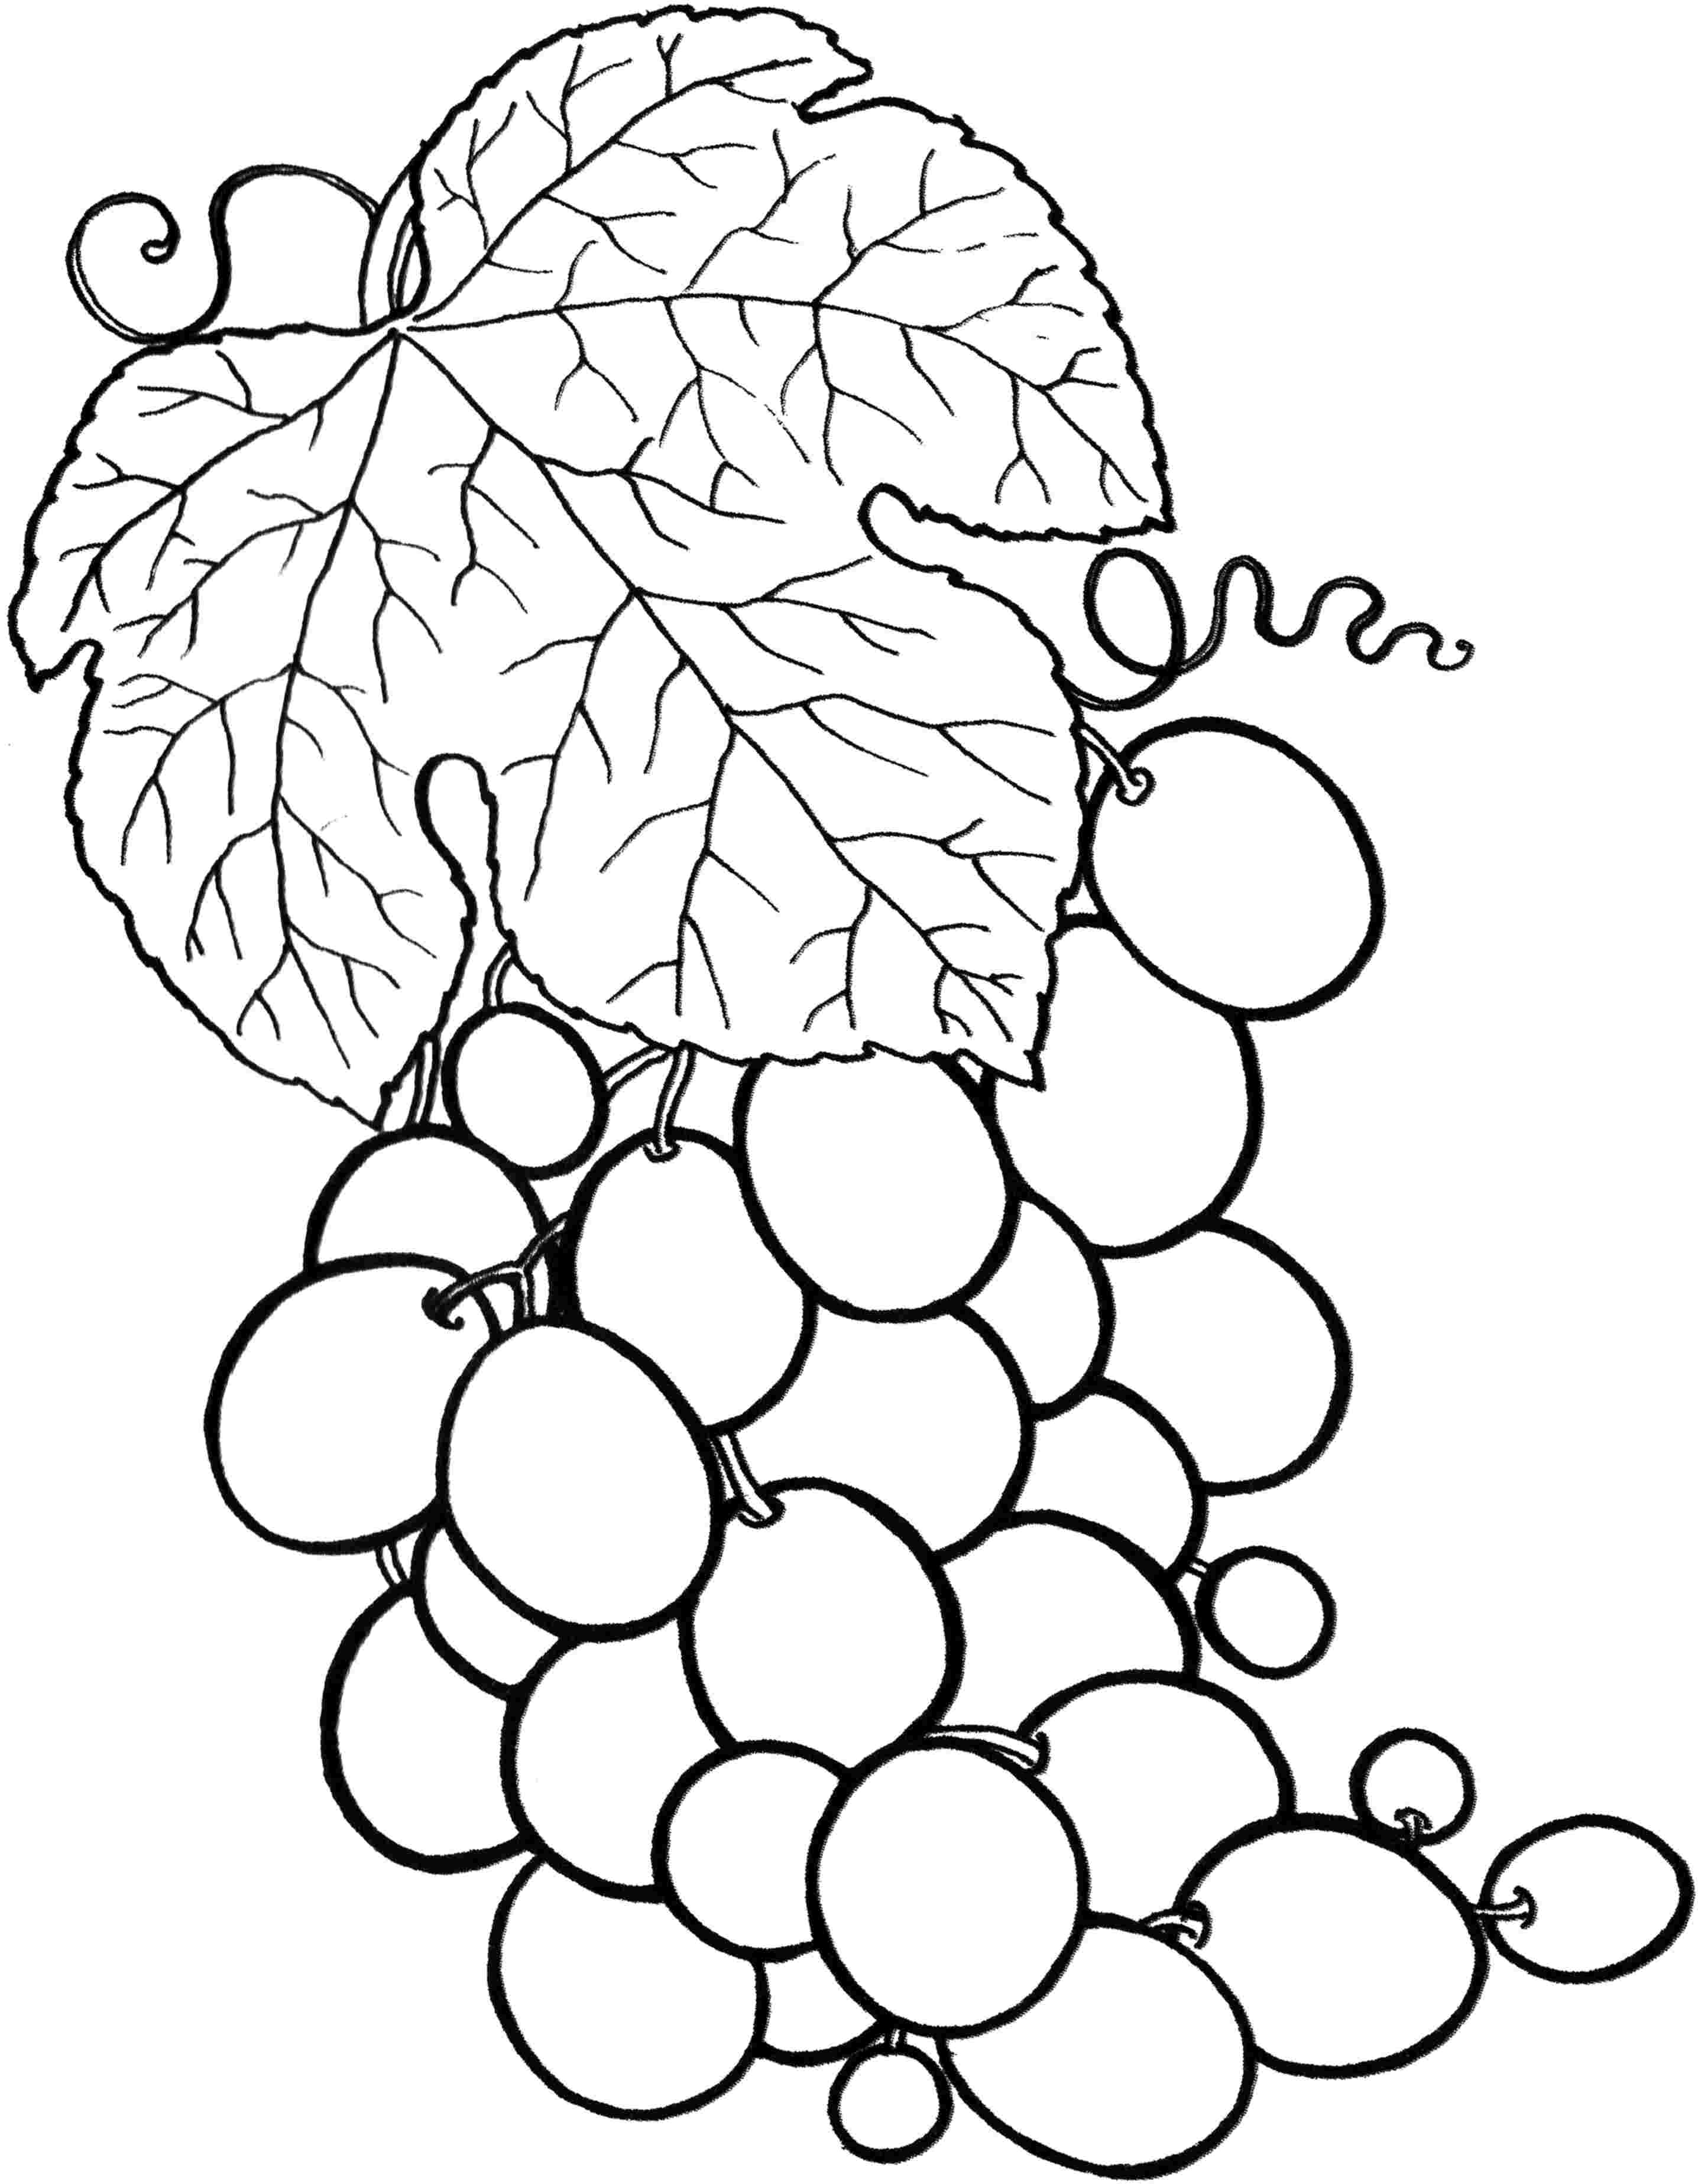 coloring pages fruit fruit coloring pages for childrens printable for free fruit pages coloring